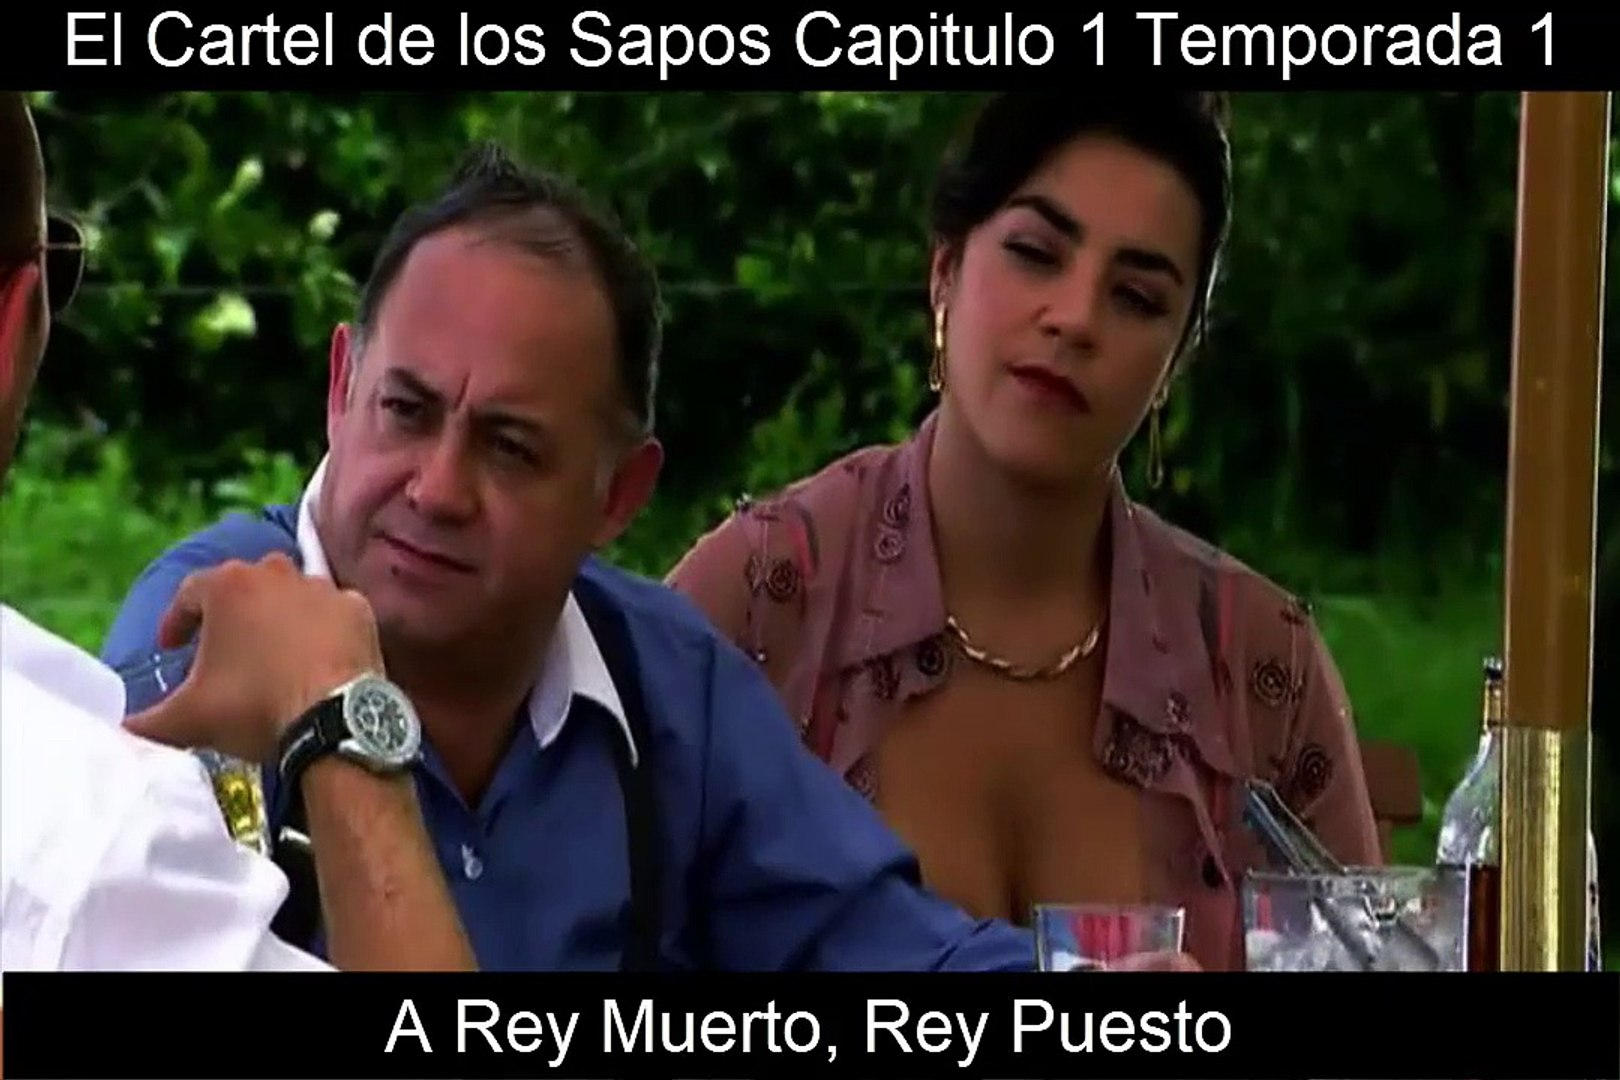 El Cartel De Los Sapos Capitulo 1 Temporada 1 Vídeo Dailymotion